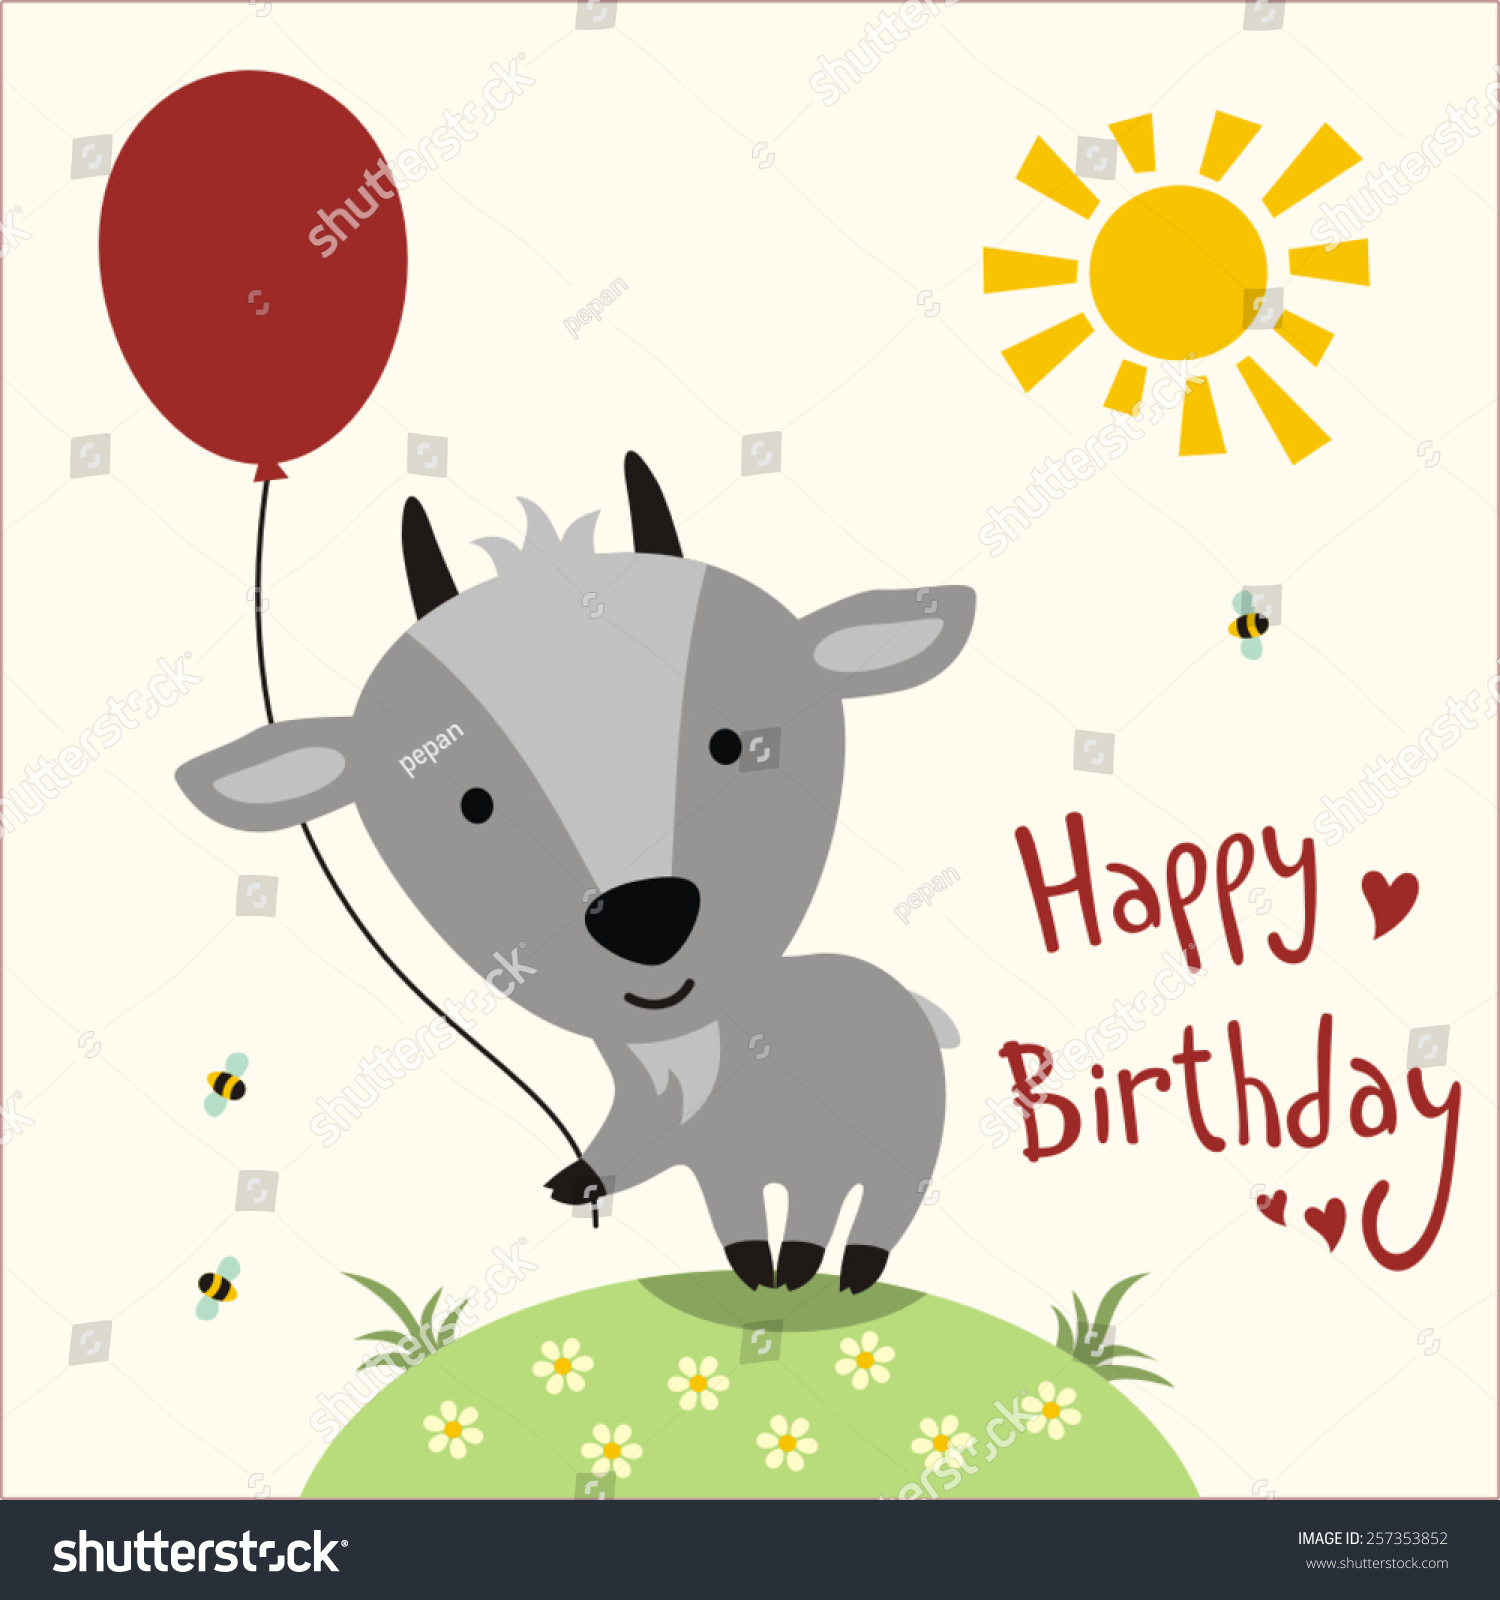 Happy Birthday Cute Little Goat Balloon Vector 257353852 – Goat Birthday Card